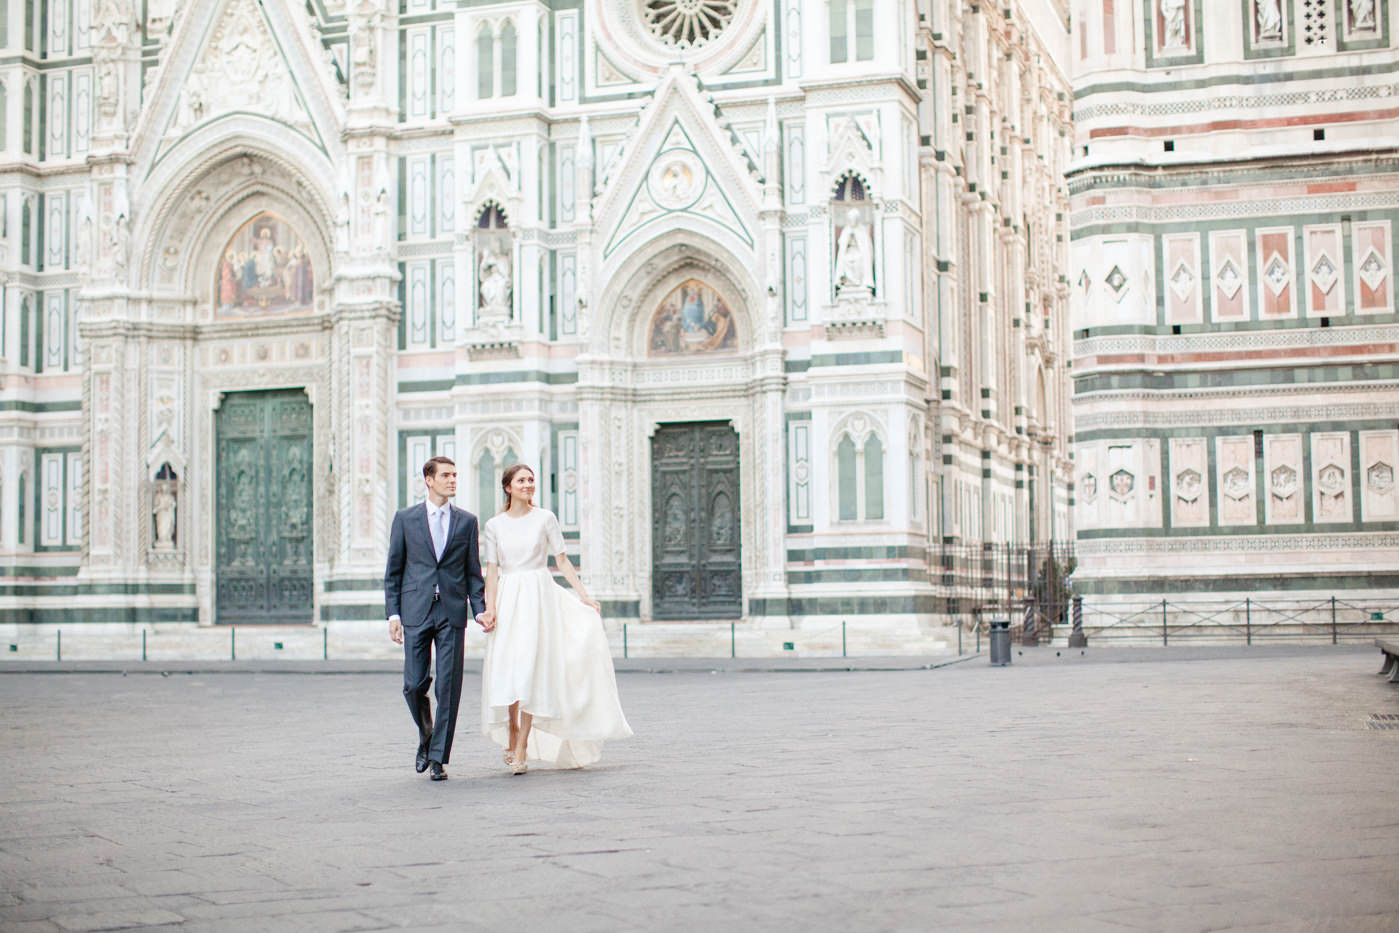 wedding-photographer-italy-sandraaberg-7484